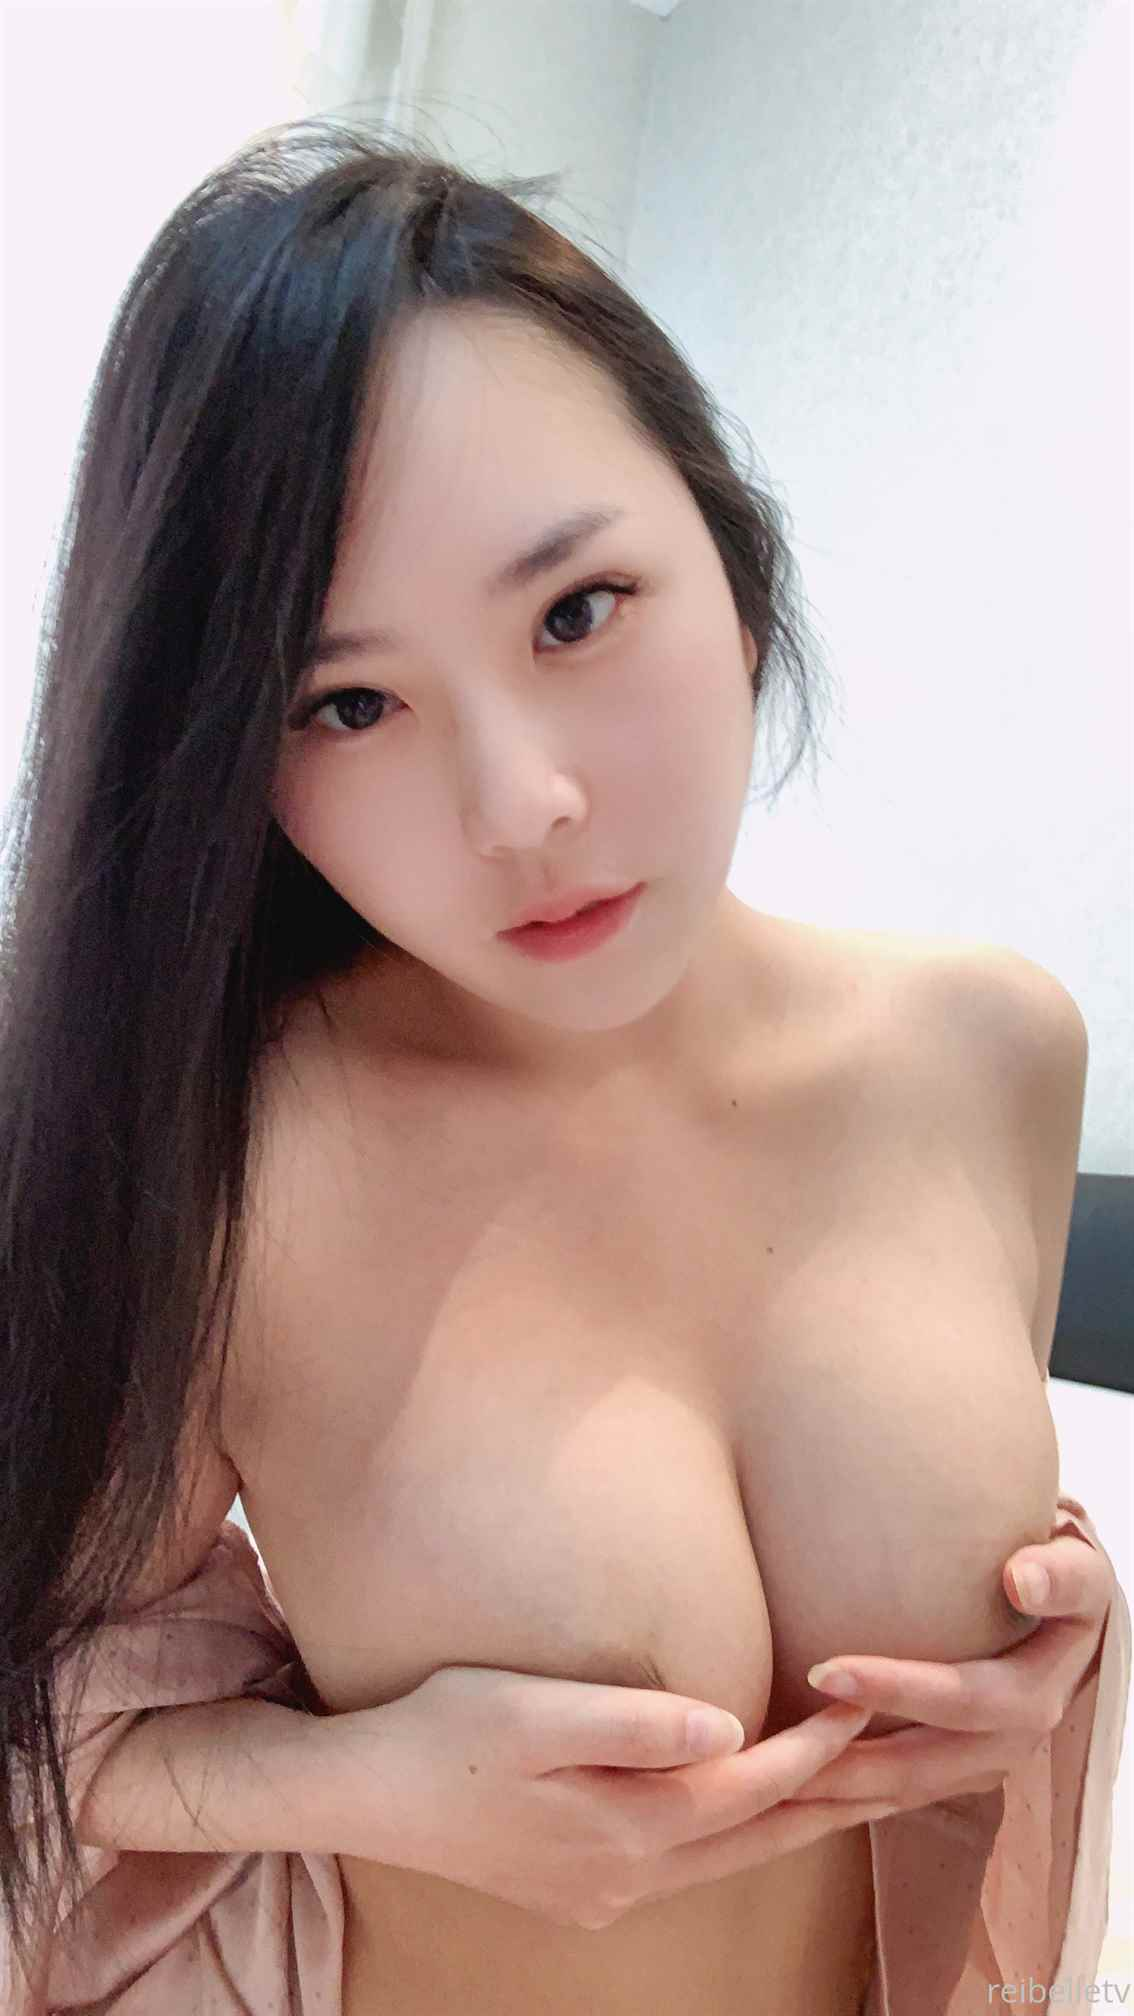 Reibelletv Nude Onlyfans Photos Leaked 0032